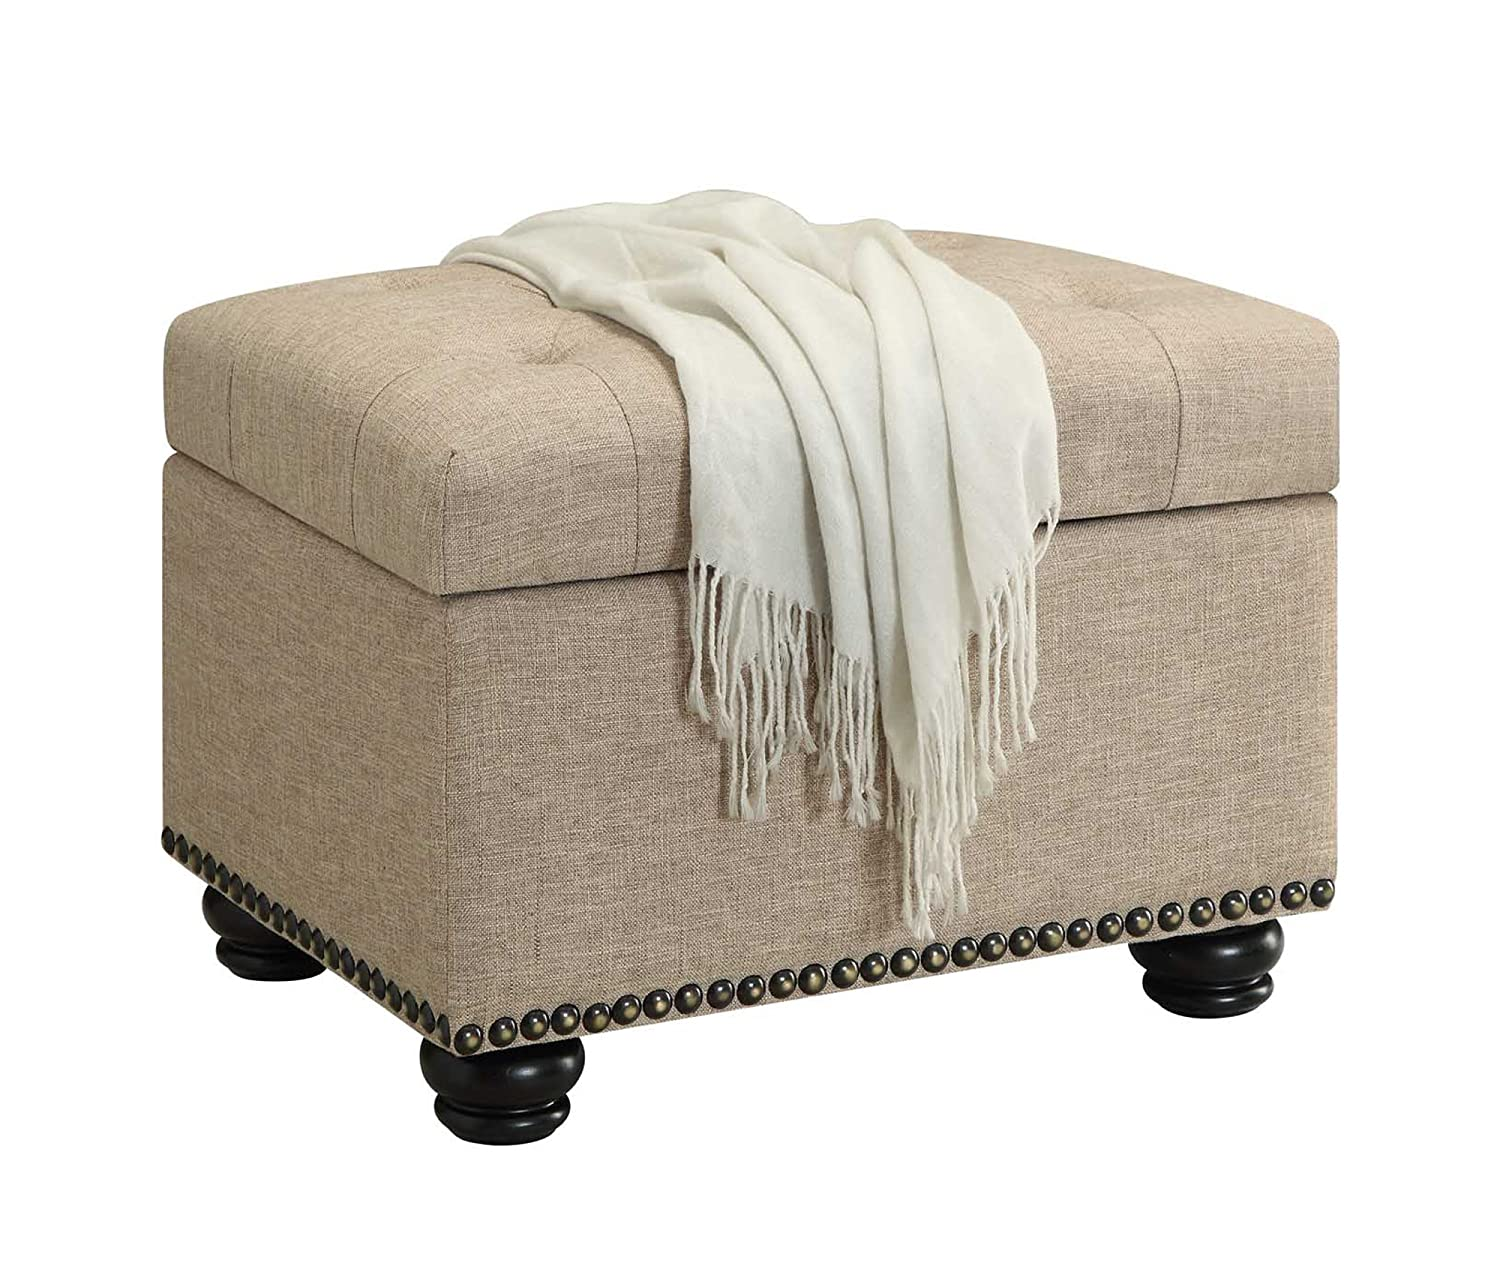 Amazon.com: Convenience Concepts Designs4Comfort Storage Ottoman, Tan:  Kitchen U0026 Dining